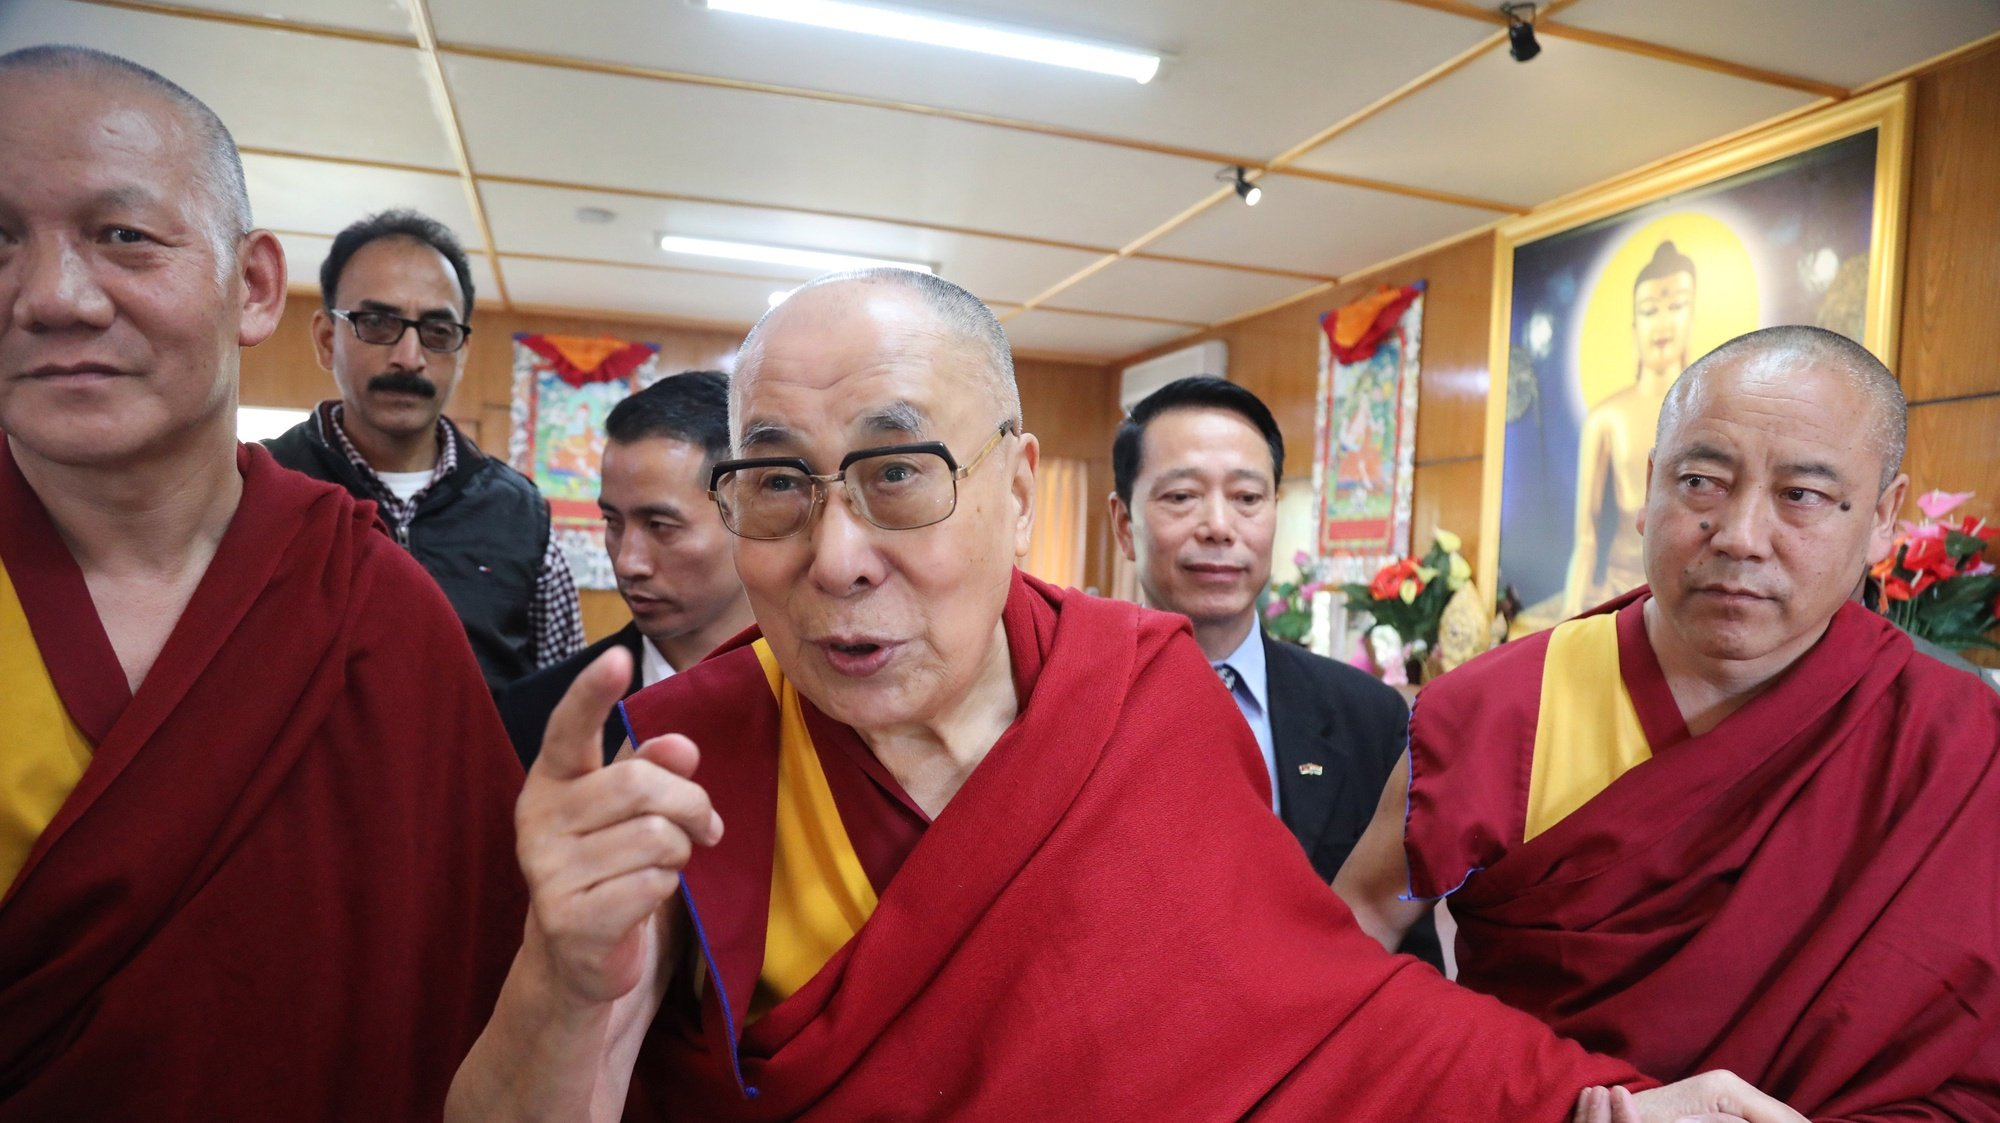 epa07948873 Tibetan spiritual leader the Dalai Lama (C), during an event to meet students and faculty members of the educational course on Ancient Indian Wisdom at Dharamsala, India, 25 October 2019. The Government College Dharamsala has recently started a 6-month certificate course in Ancient Indian Wisdom which has been approved by the Himachal Pradesh government's educational body.  EPA/SANJAY BAID